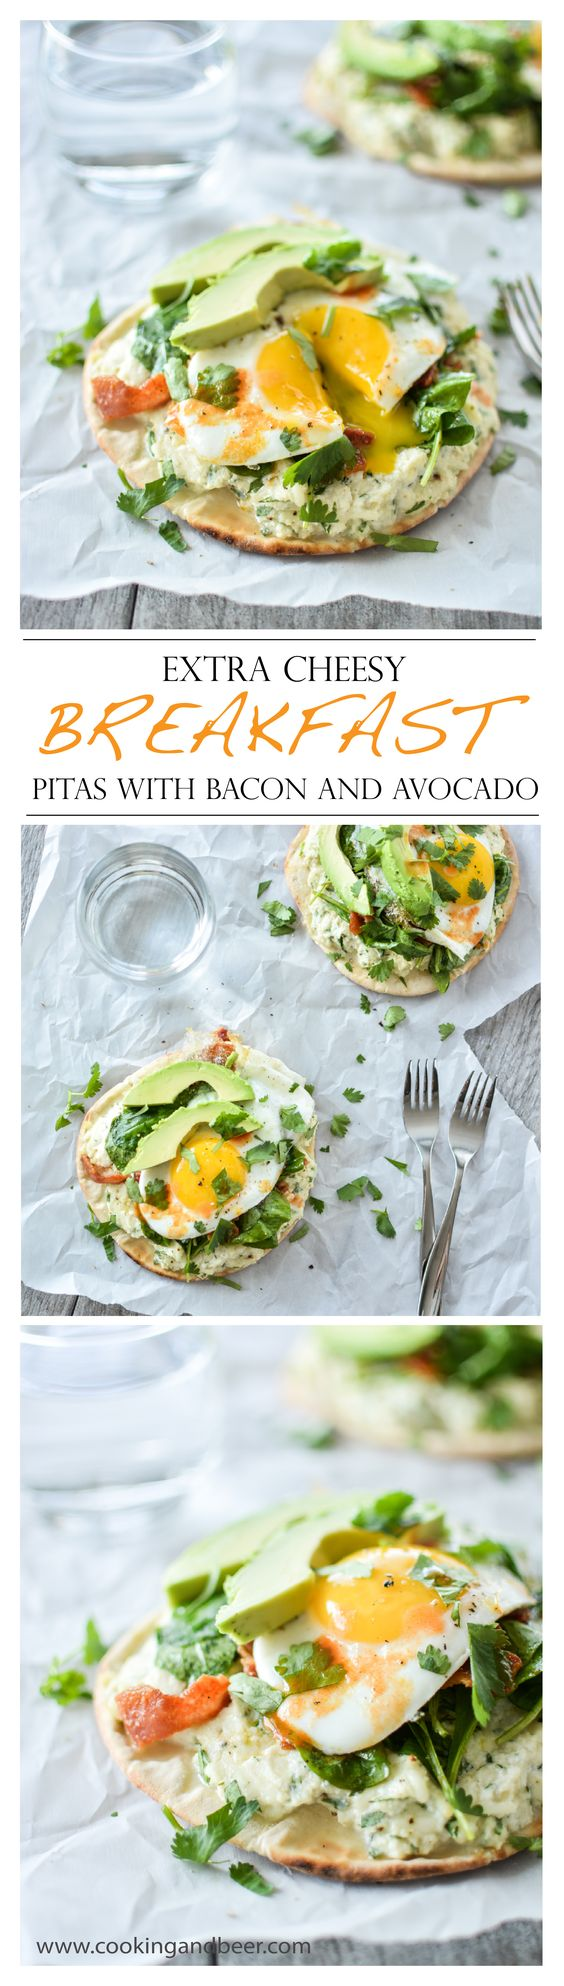 Extra Cheesy Breakfast Pitas with Bacon and Avocado | www ...